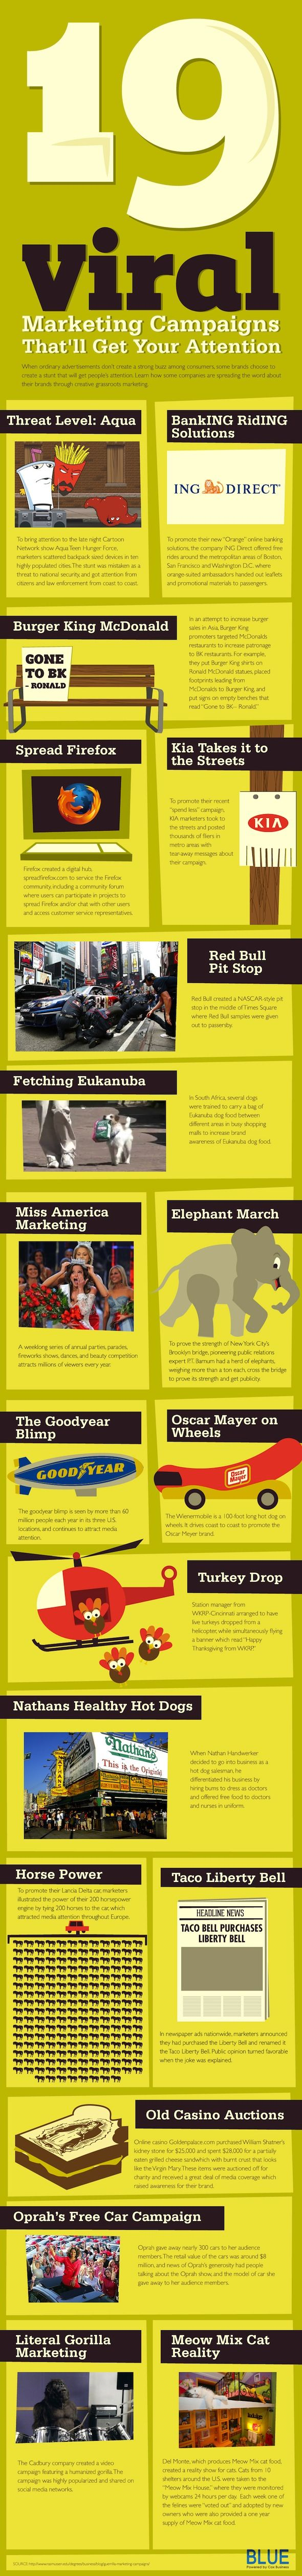 19 Viral Marketing Campaigns That'll Get Your Attention [INFOGRAPHIC]